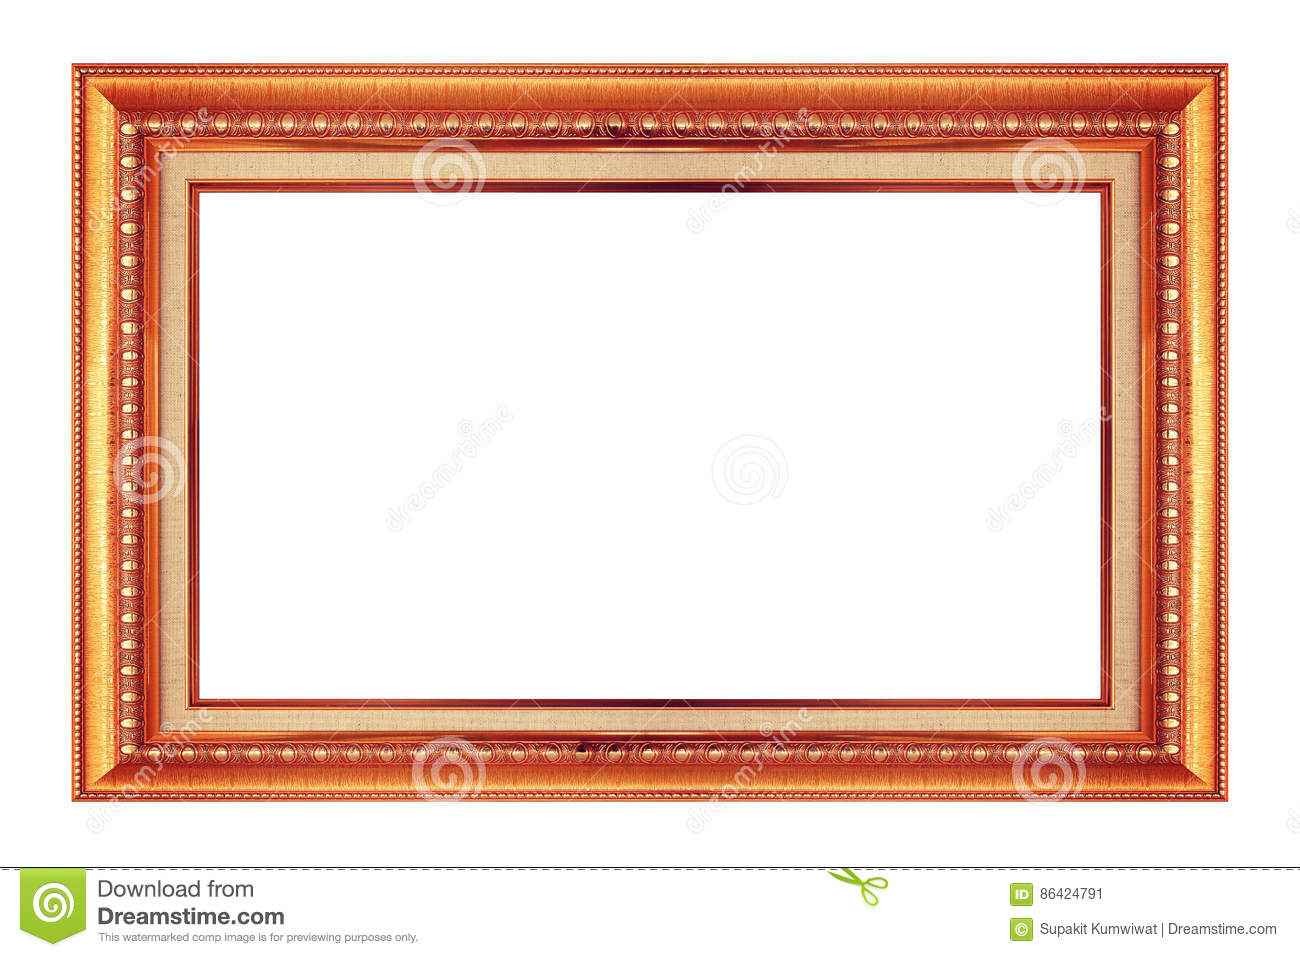 Frame gold and copper vintage isolated background.